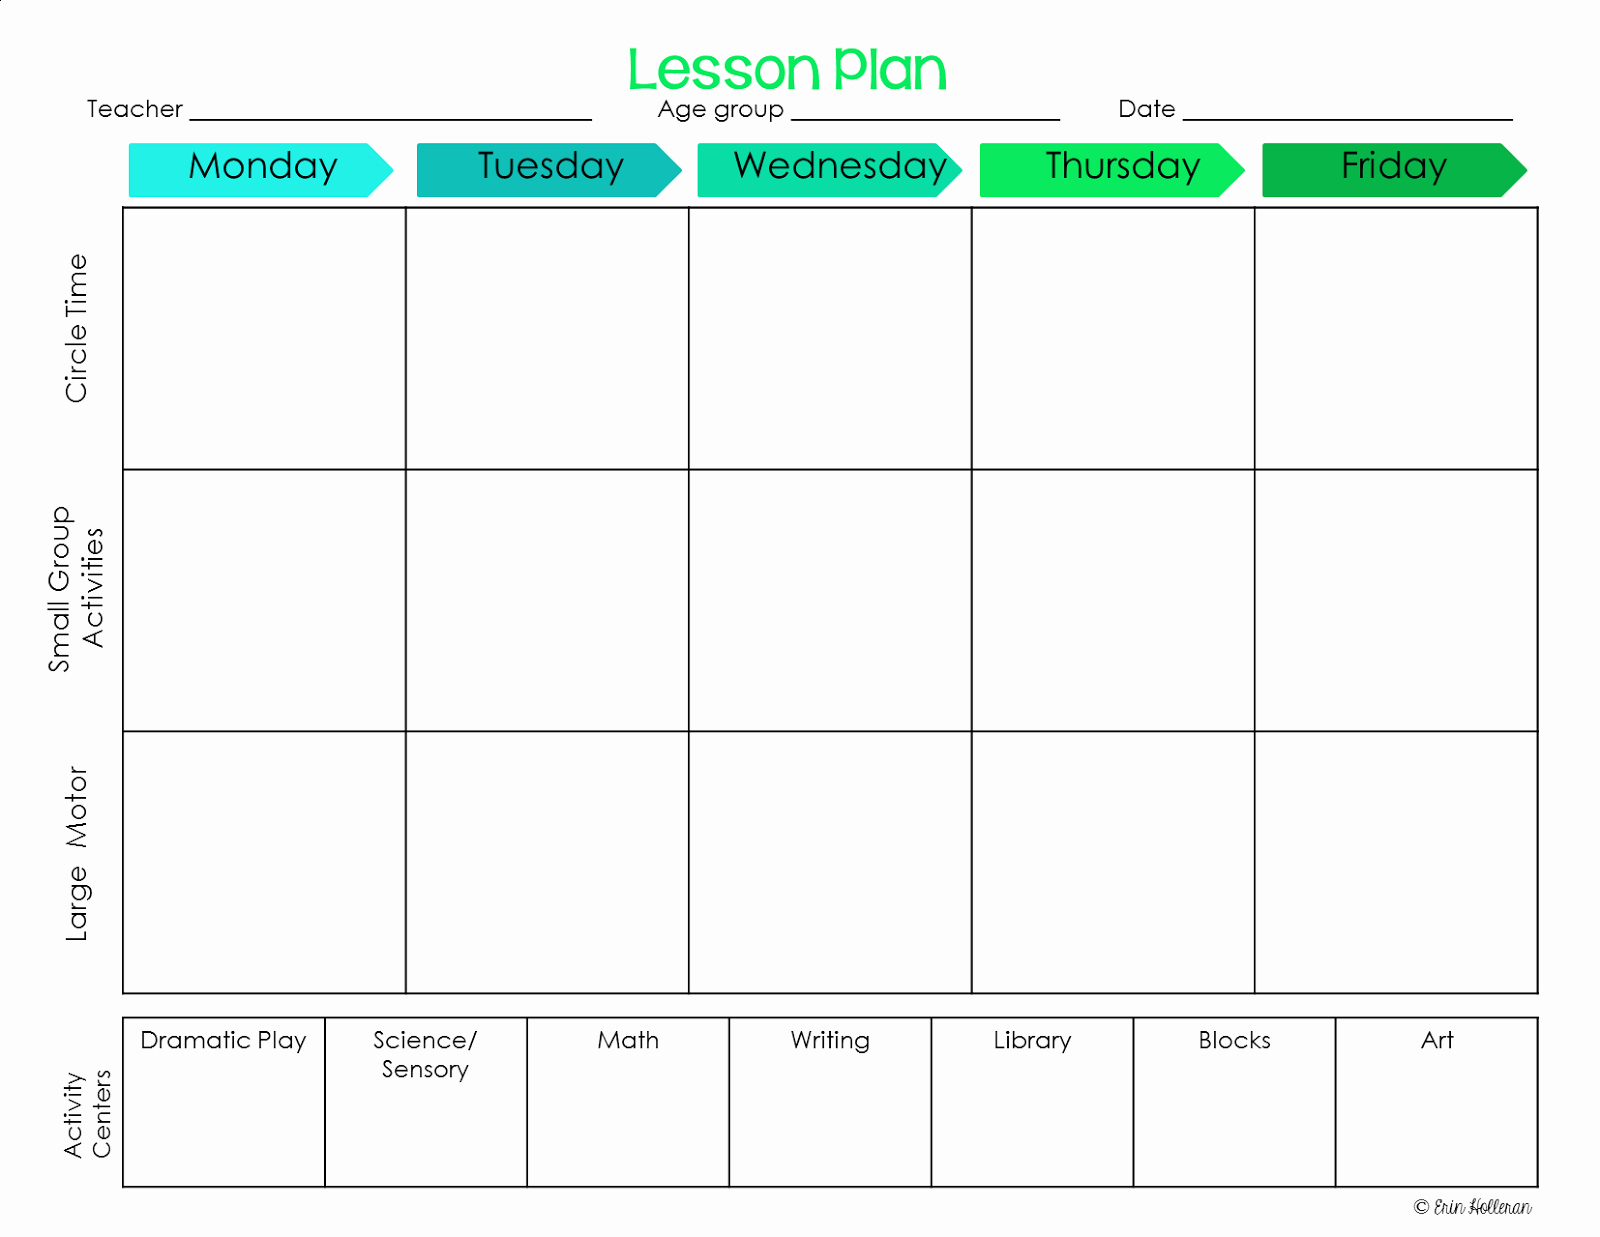 Lesson Plans Template for toddlers New Preschool Ponderings Make Your Lesson Plans Work for You